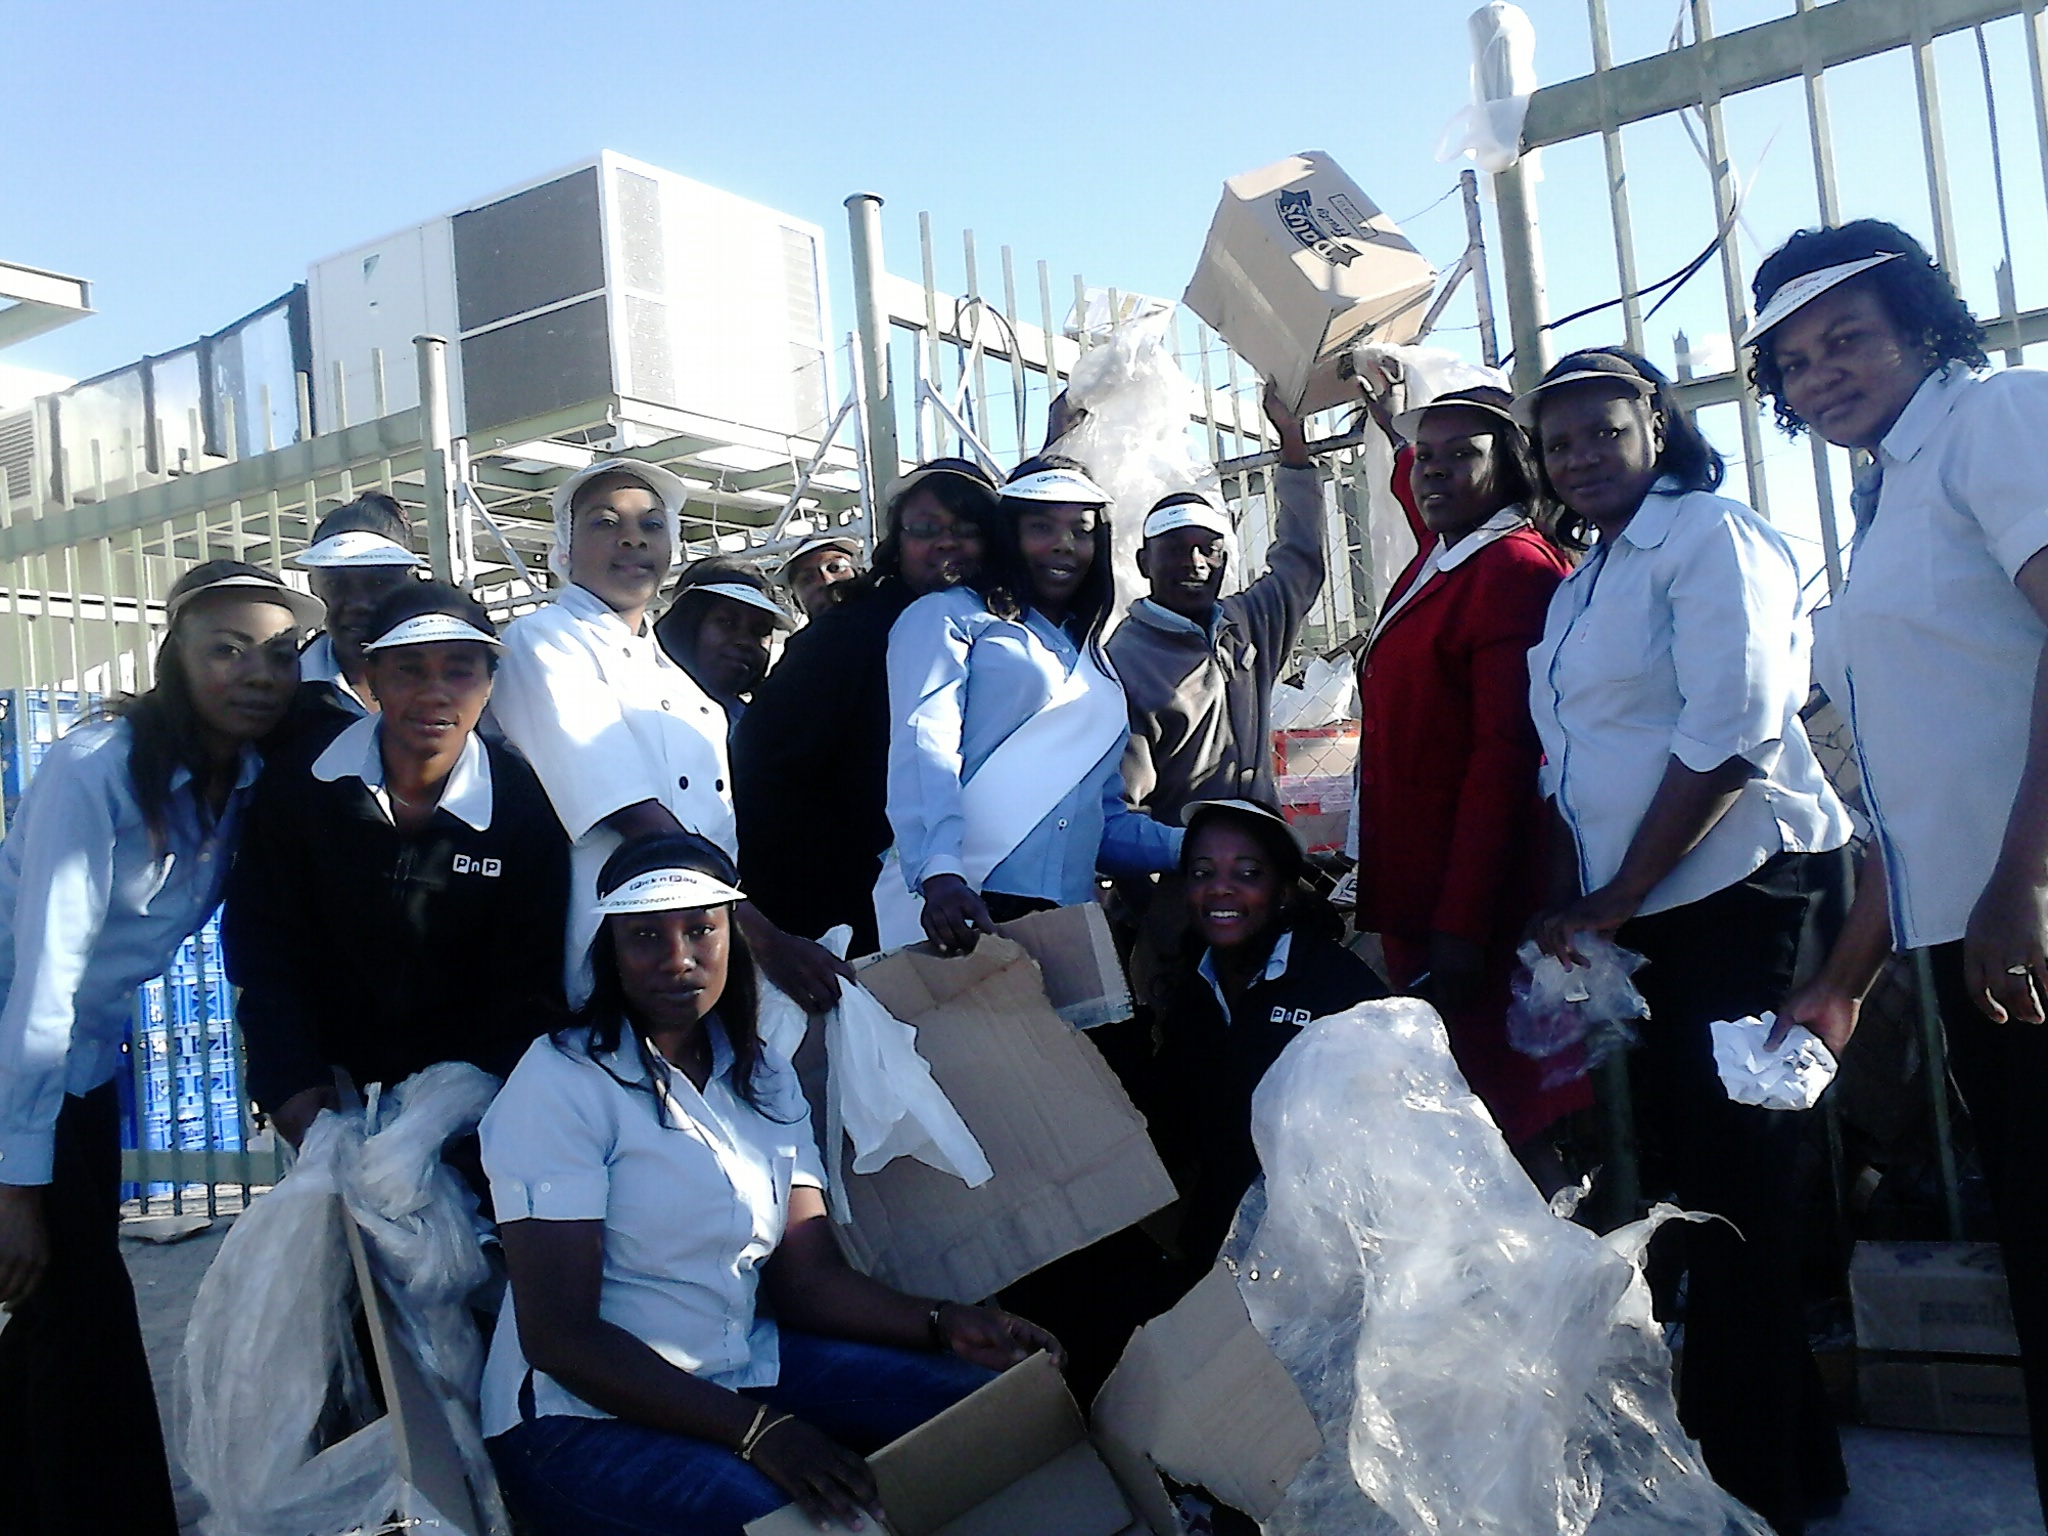 Pick n Pay Oshana staff seen here collecting boxes and plastic wrappers which come from packaging of merchandise in store. They have taken it upon themselves to collect the materials and reuse for repackaging stock or recycle as needed.